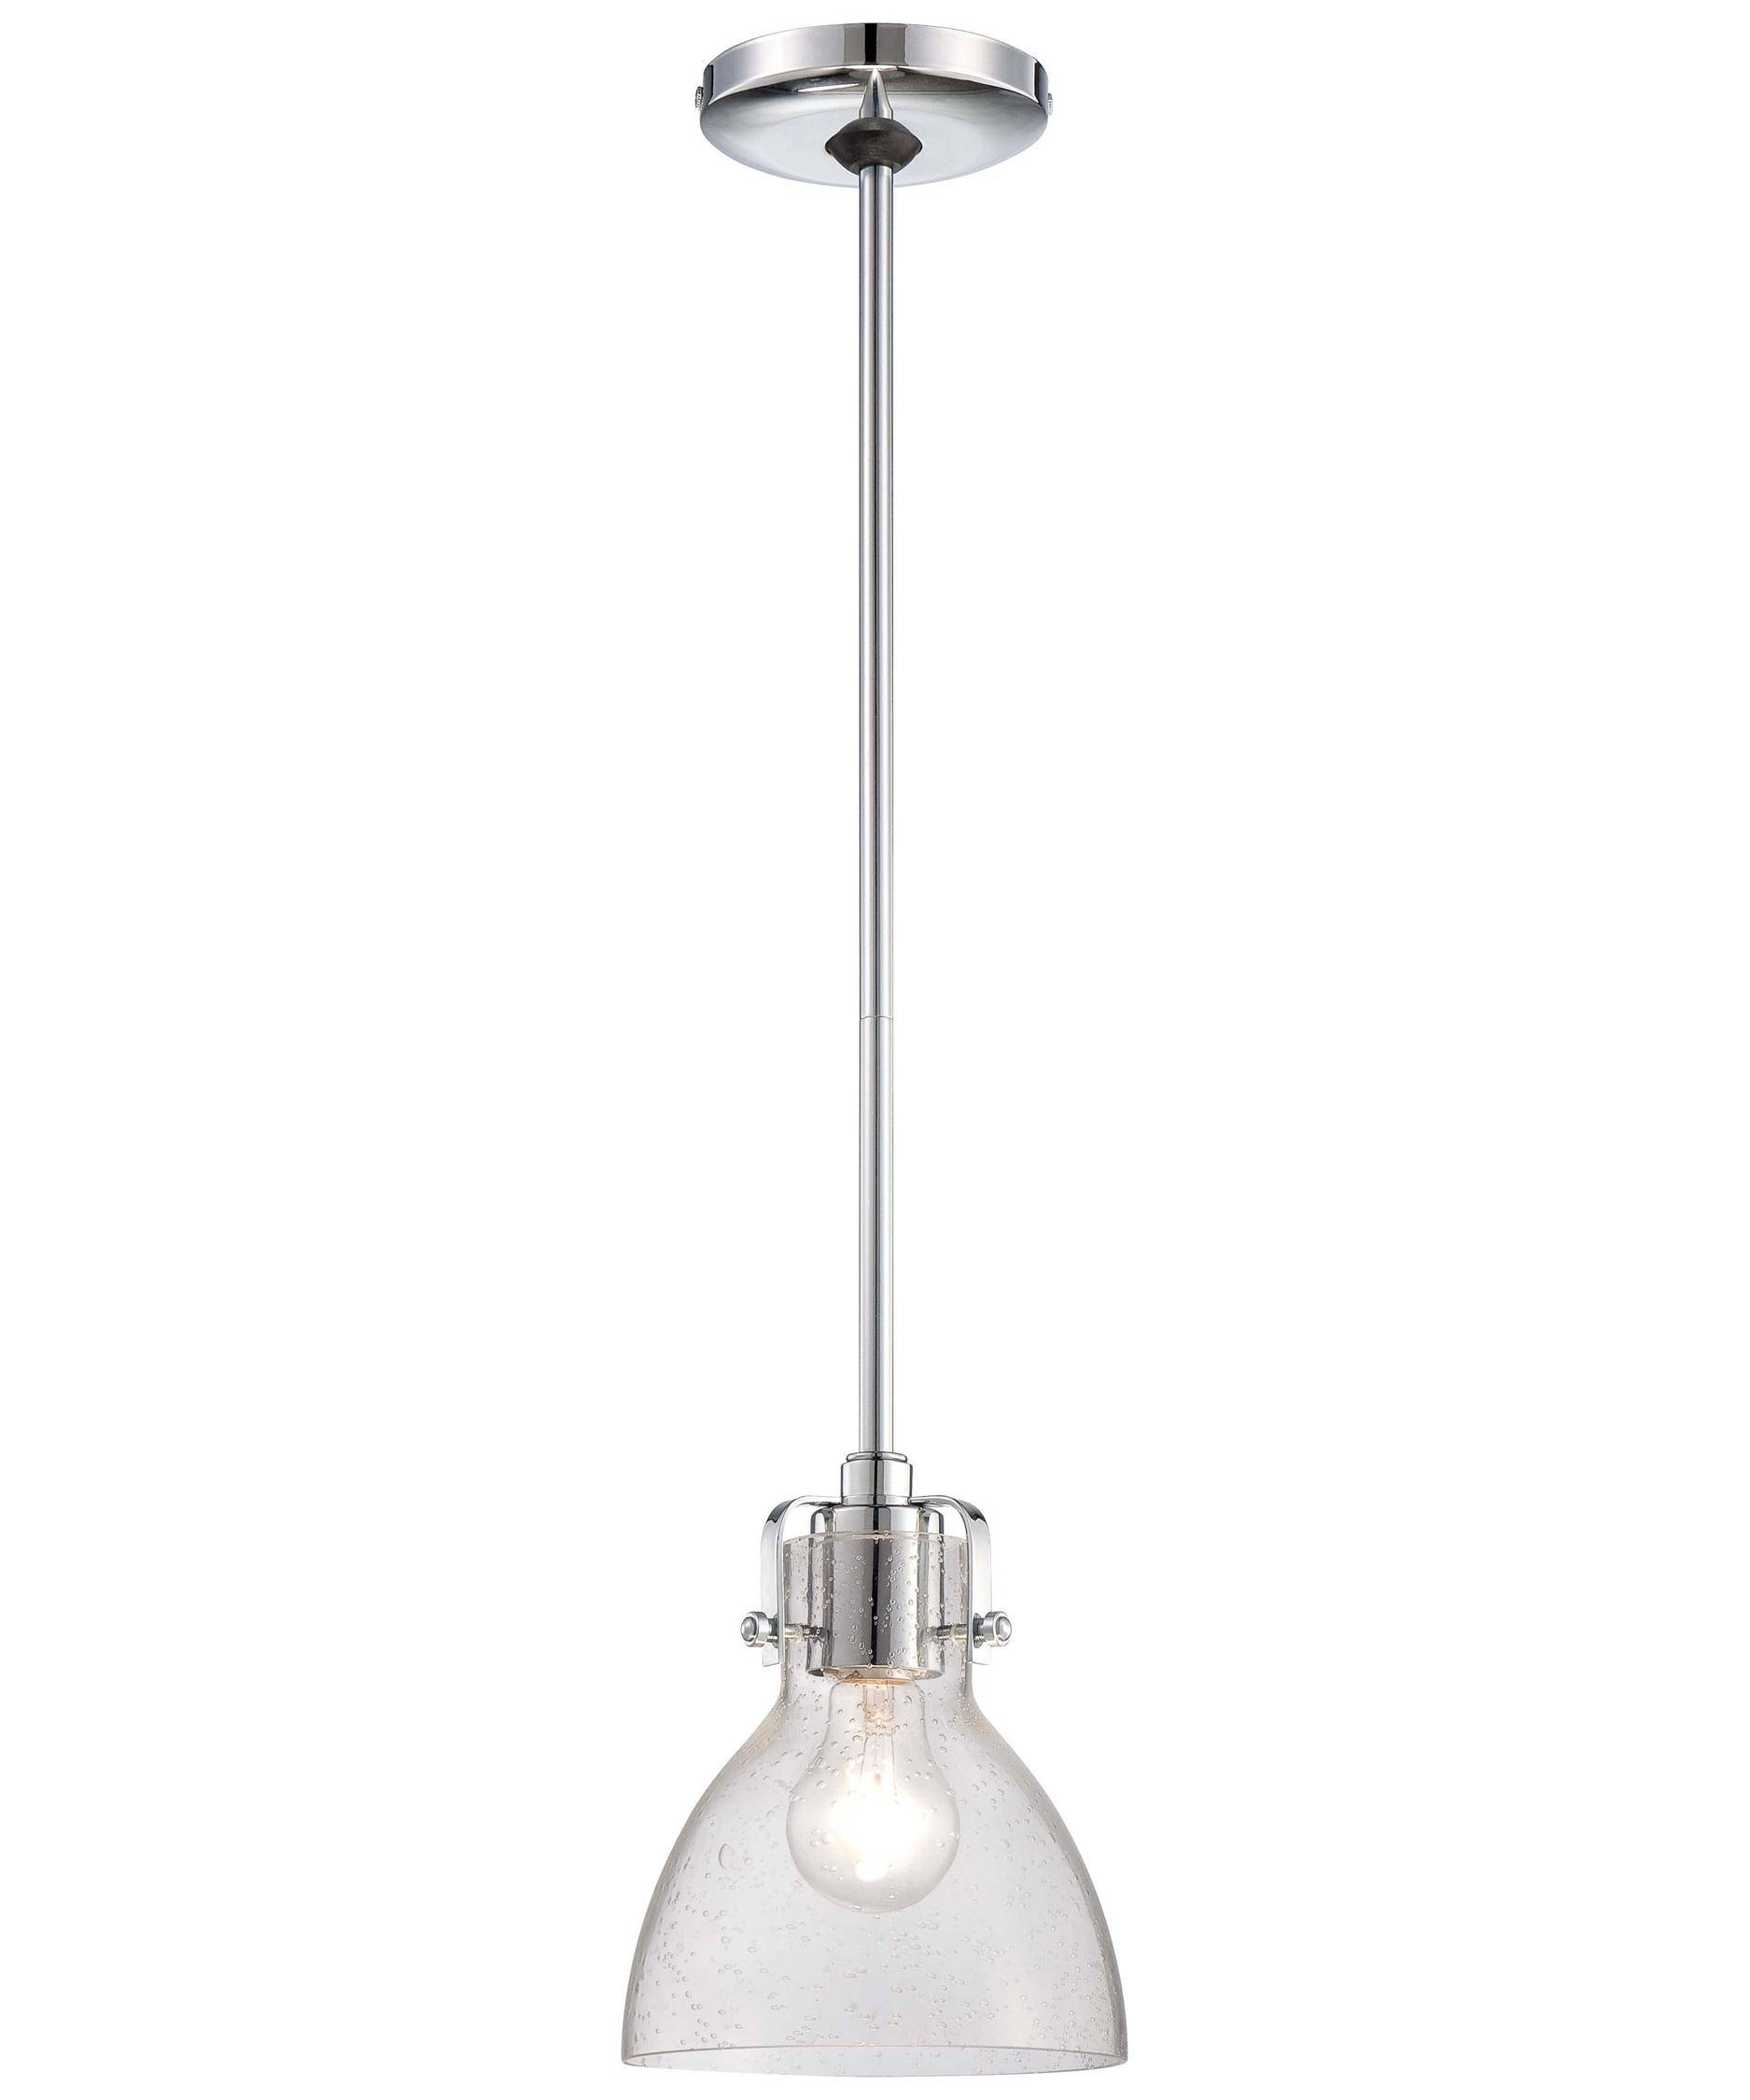 Pendant Lighting : Inspiring Seeded Glass Pendant Light West Elm throughout West Elm Glass Pendants (Image 13 of 15)